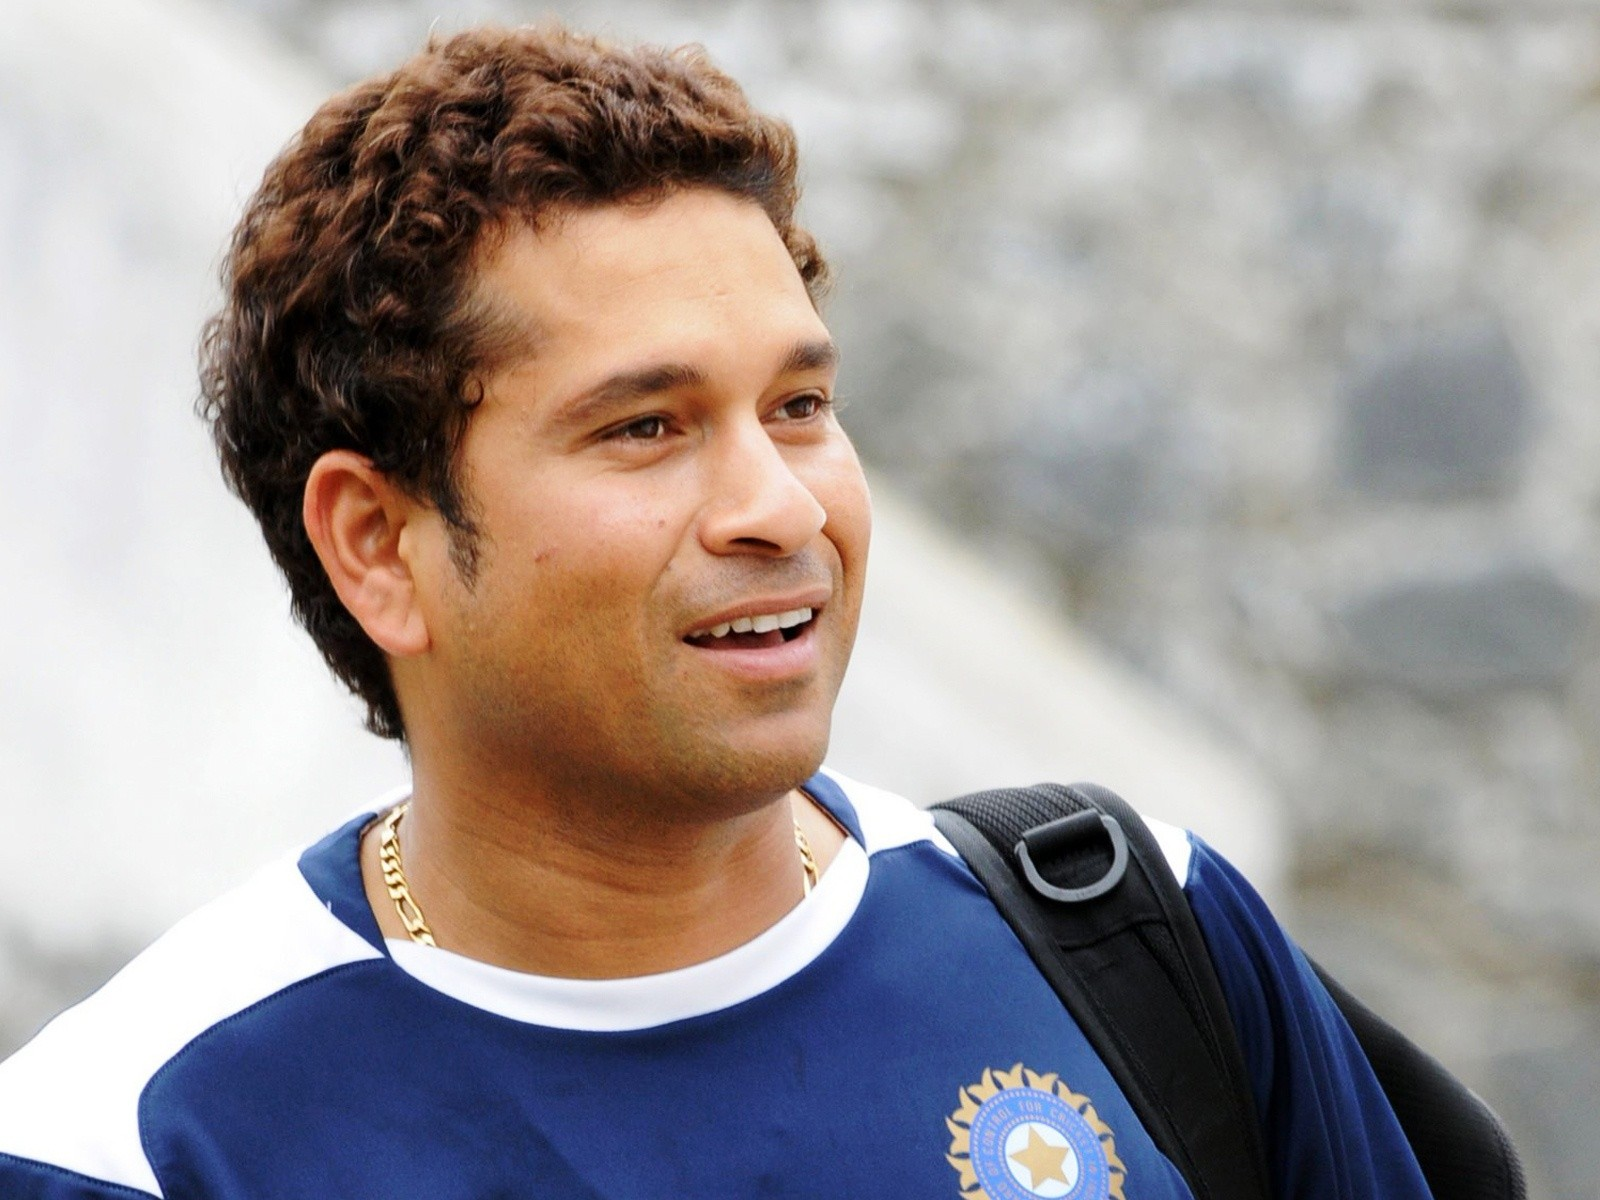 amazing sachin tendulkar cute smile face look still mobile hd background free desktop images